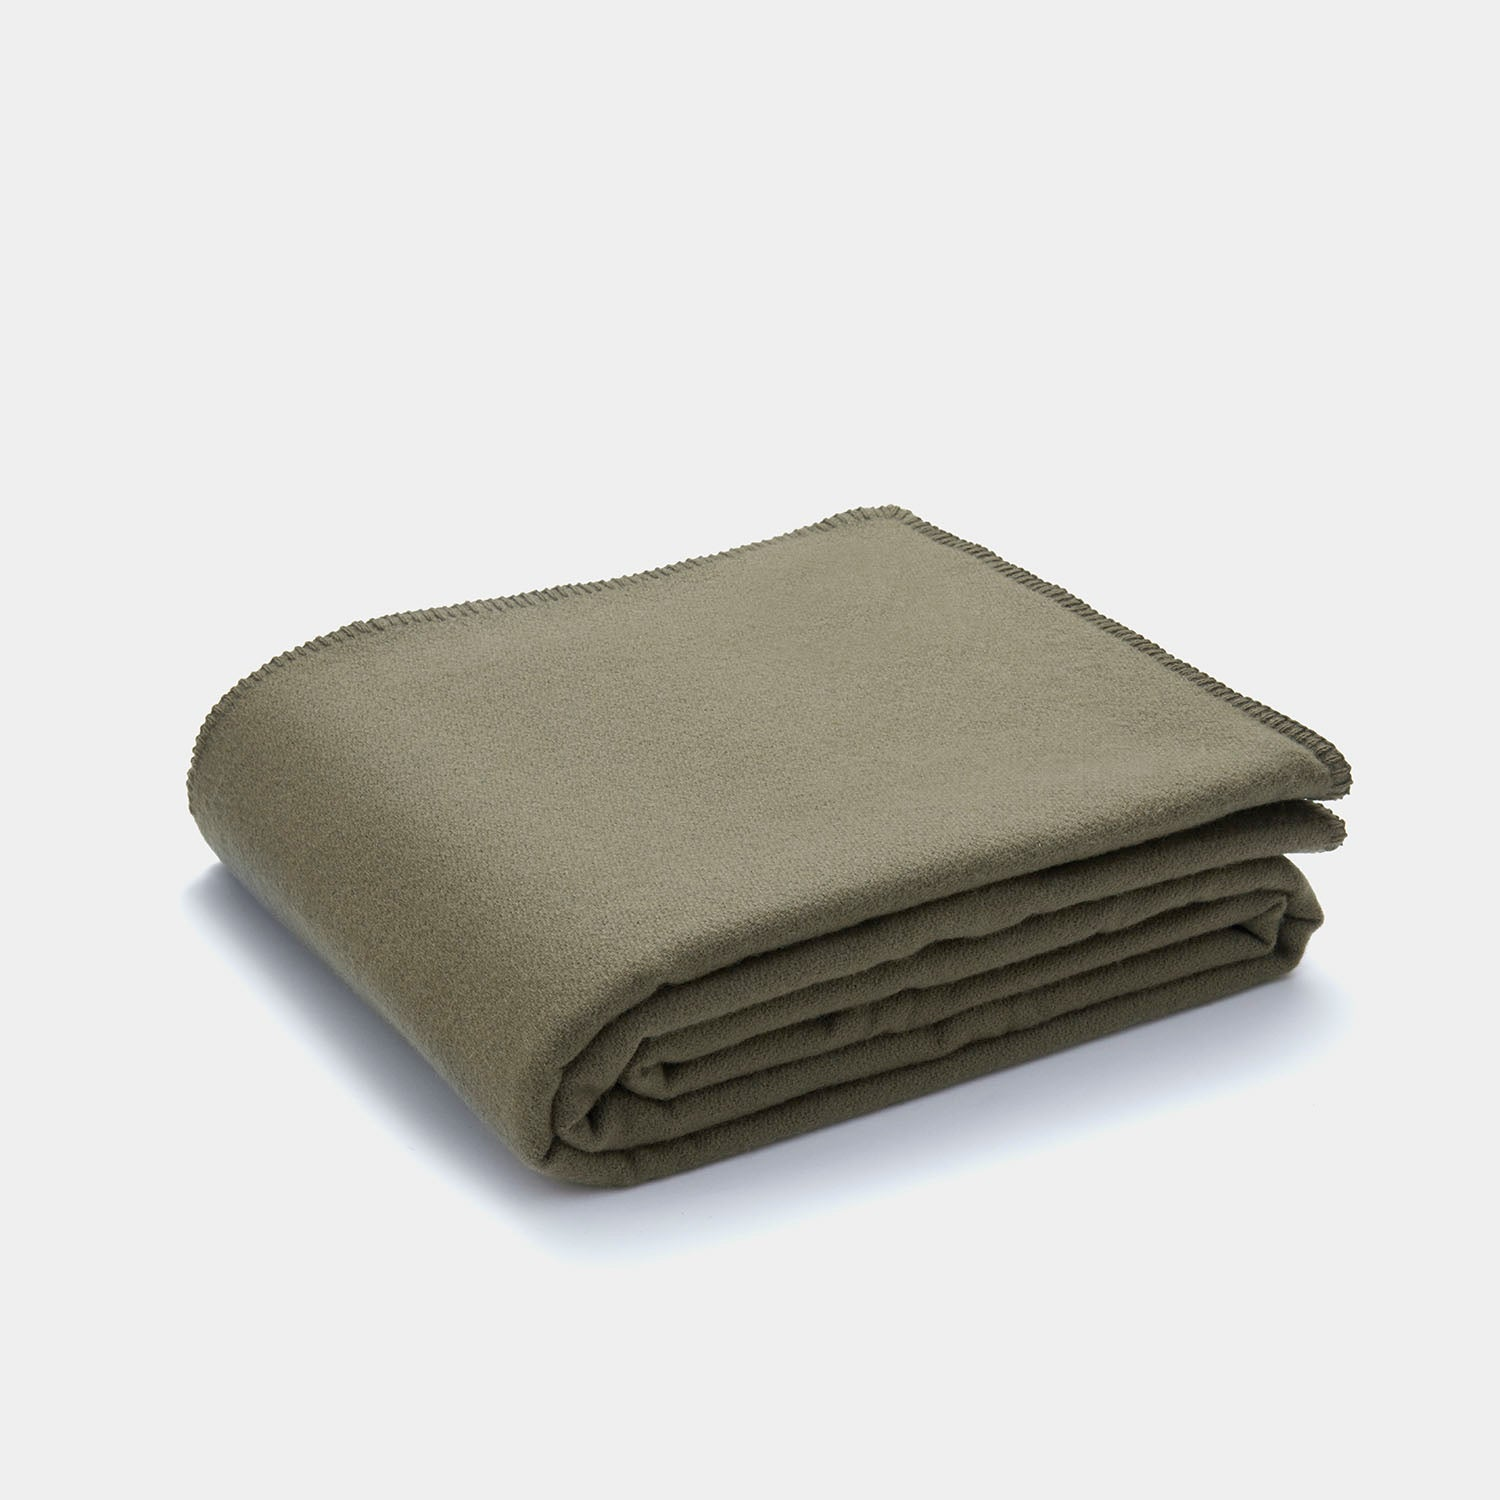 Pendleton Eco-Wise Wool Solid Blanket - Caper